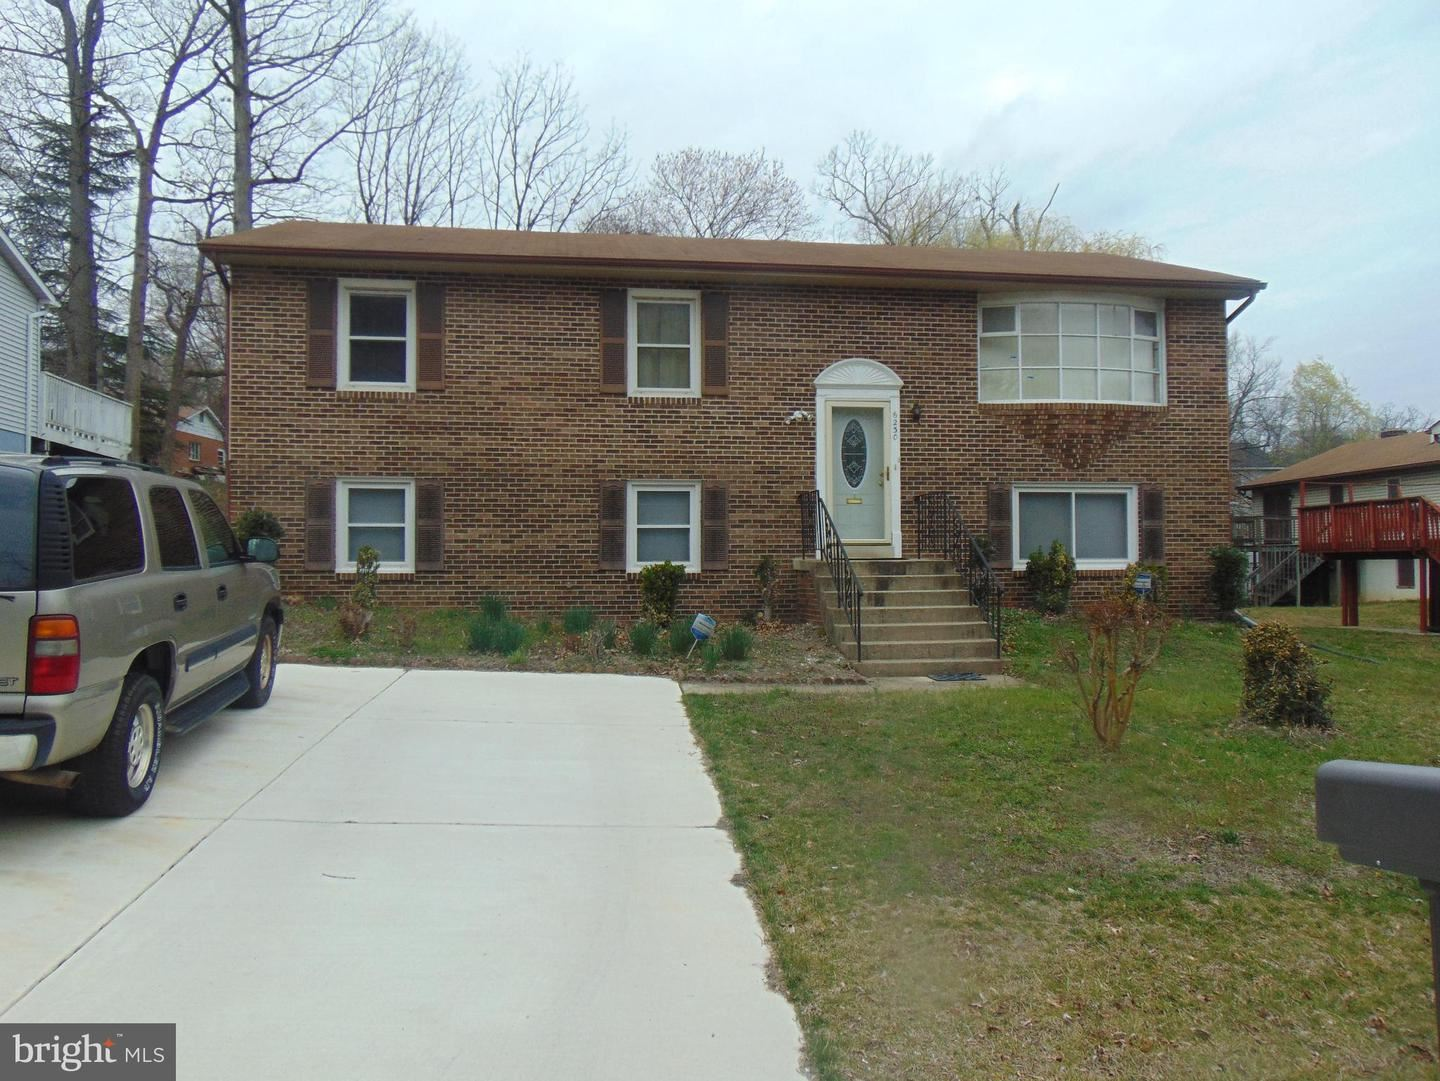 6230 CHEVERLY PARK DR, Cheverly, MD 20785 - #: MDPG564168